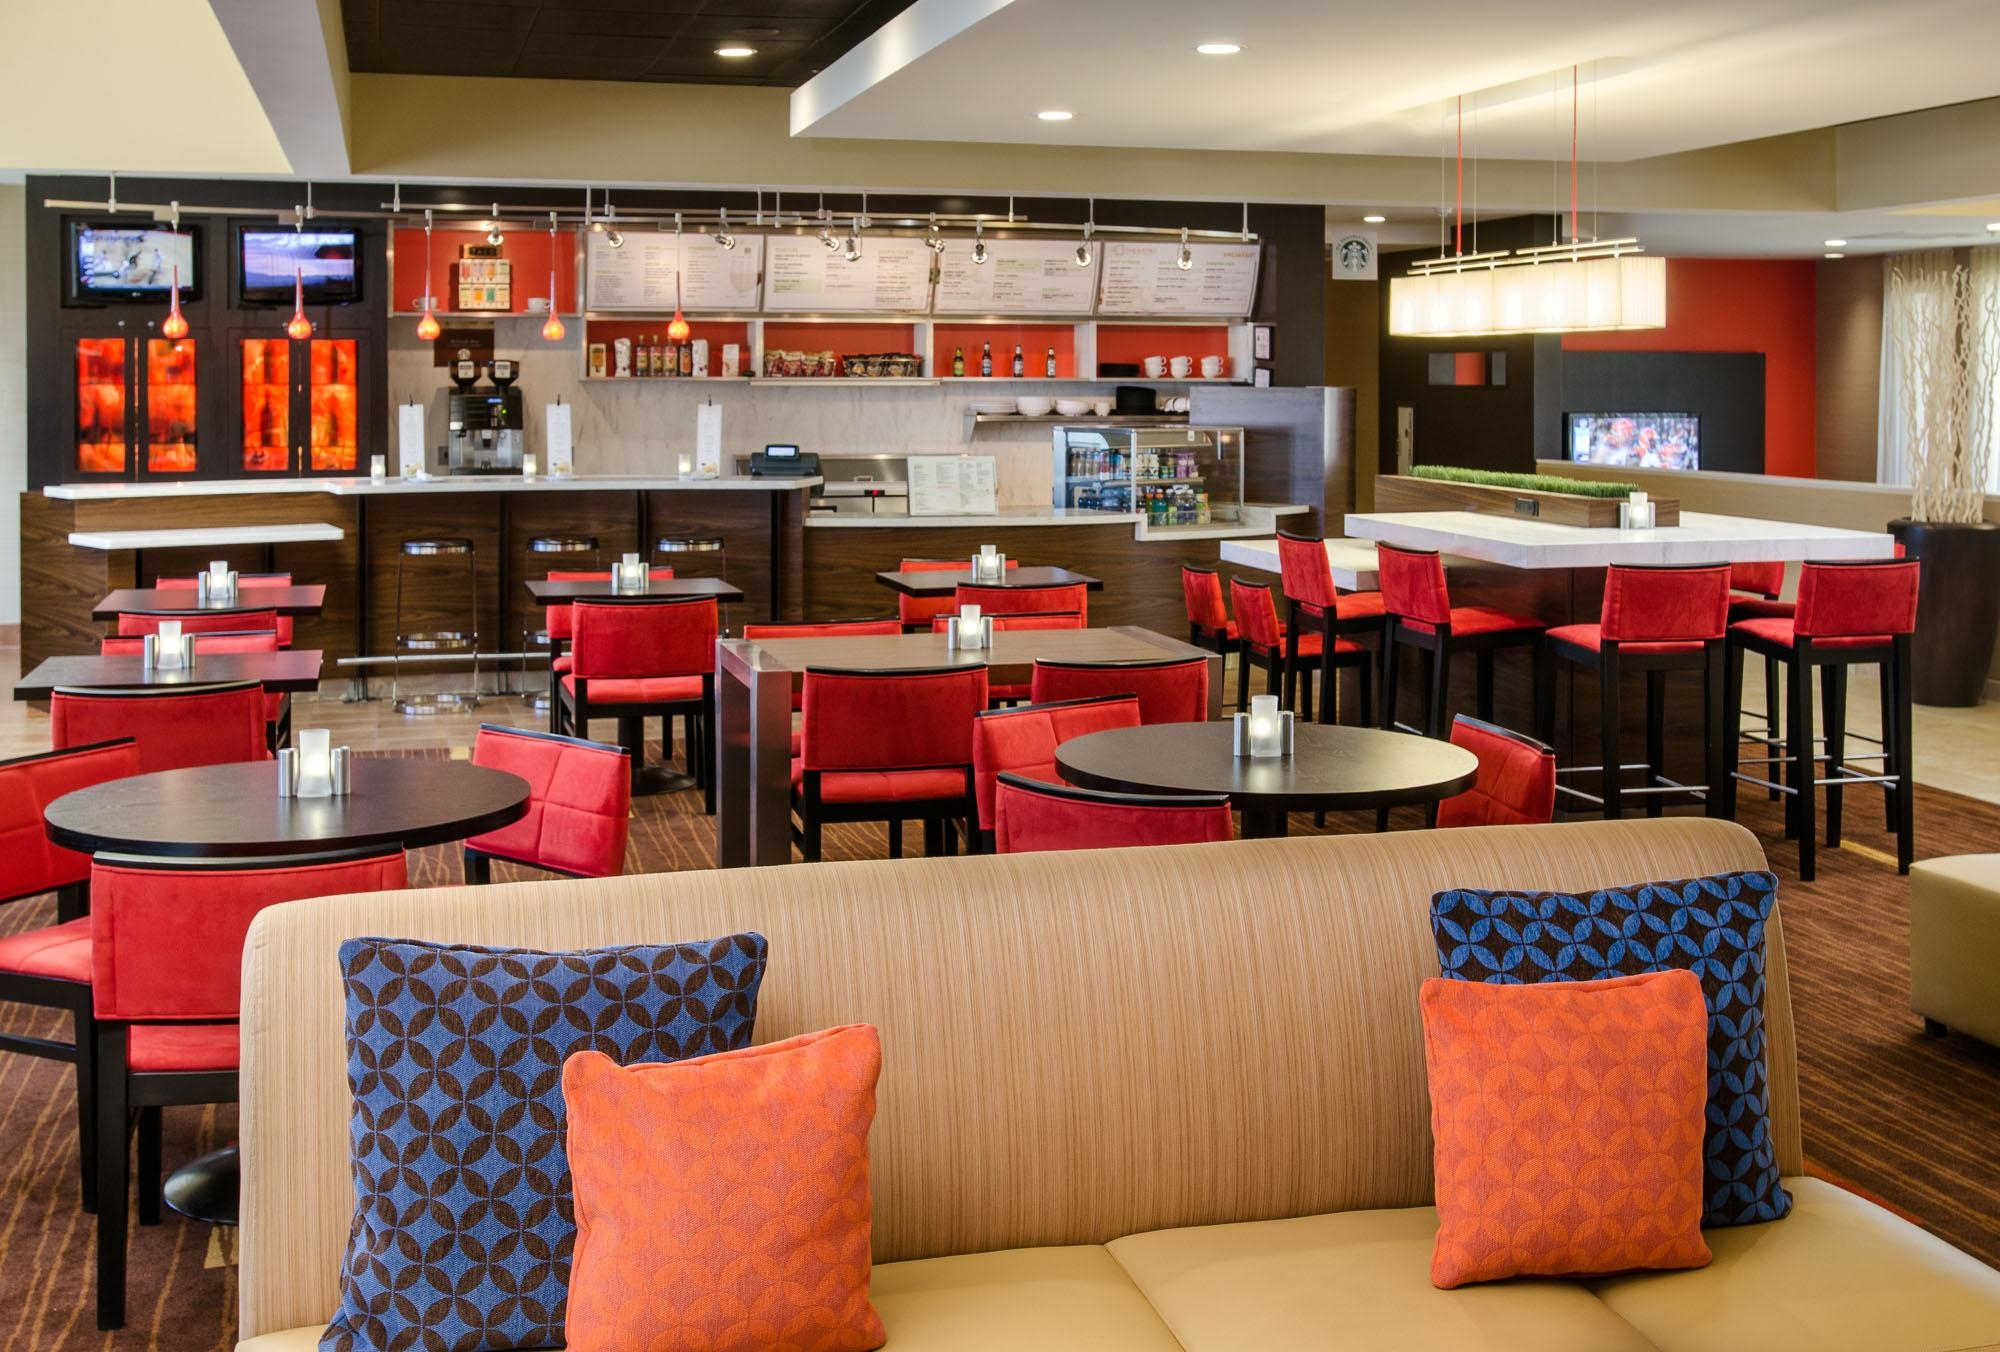 Courtyard by Marriott Charlotte Arrowood image 3